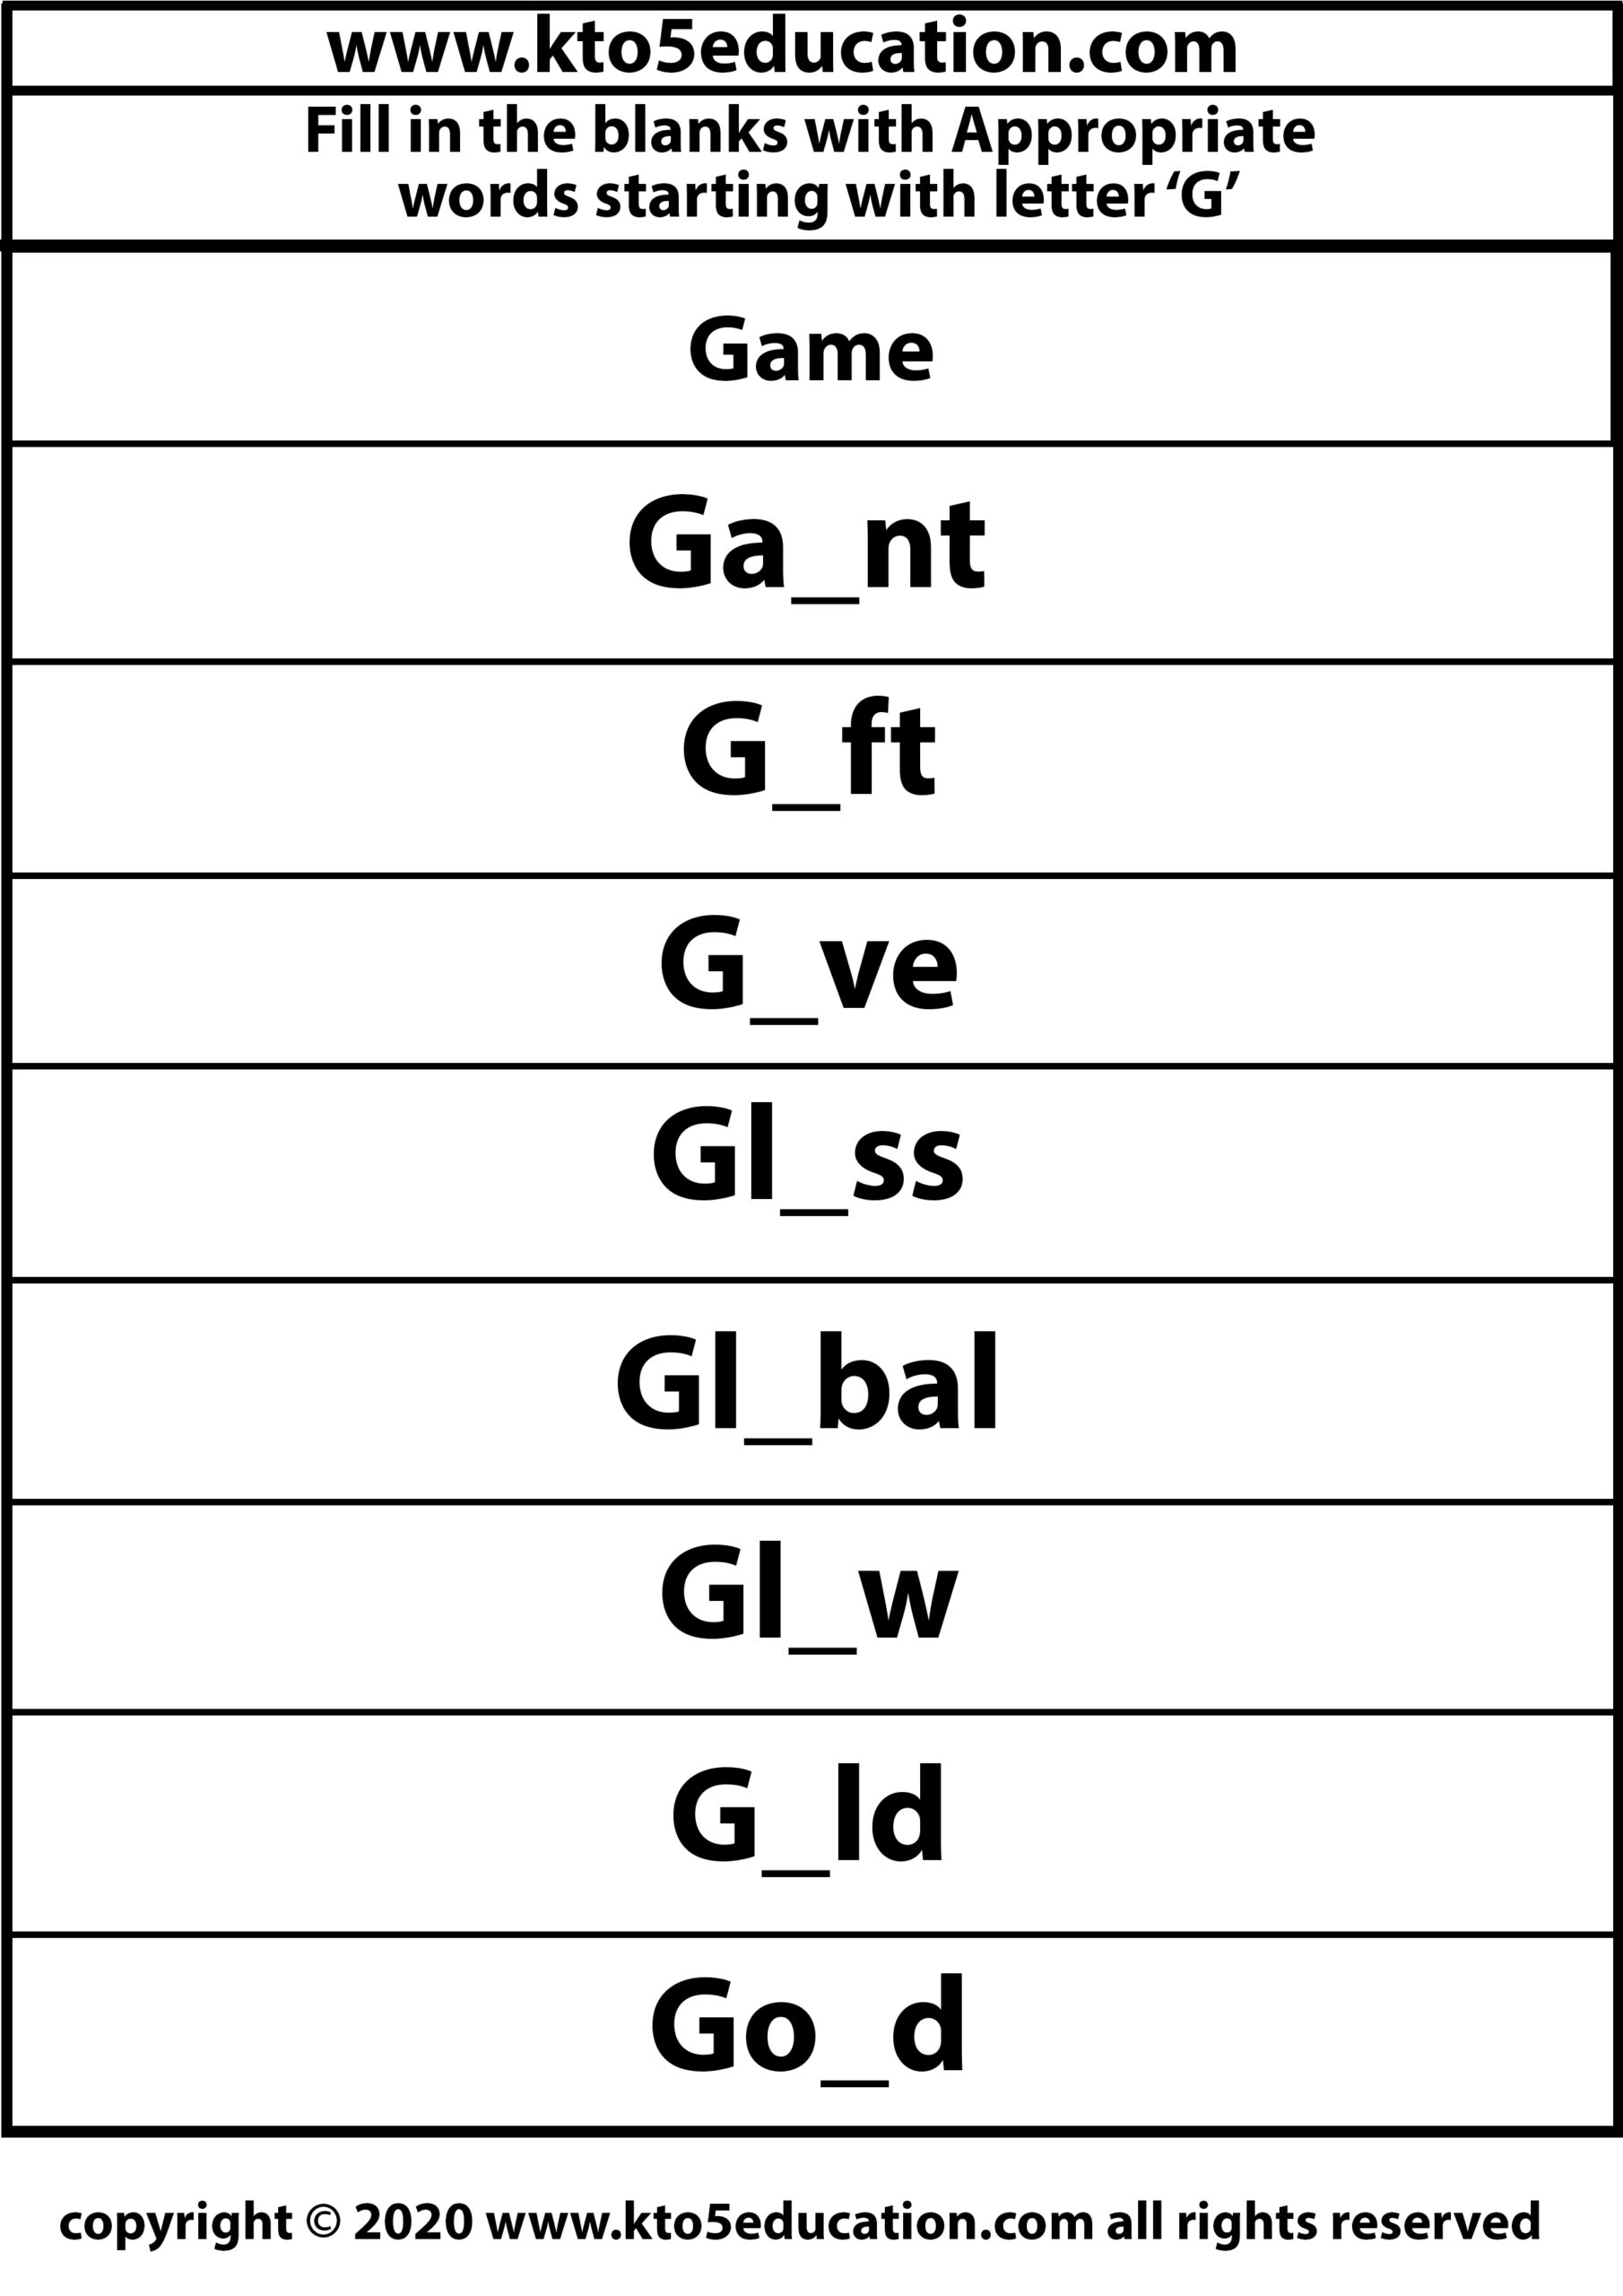 Fill in the Blanks With Appropriate Words Starting with Latter G Worksheets 2